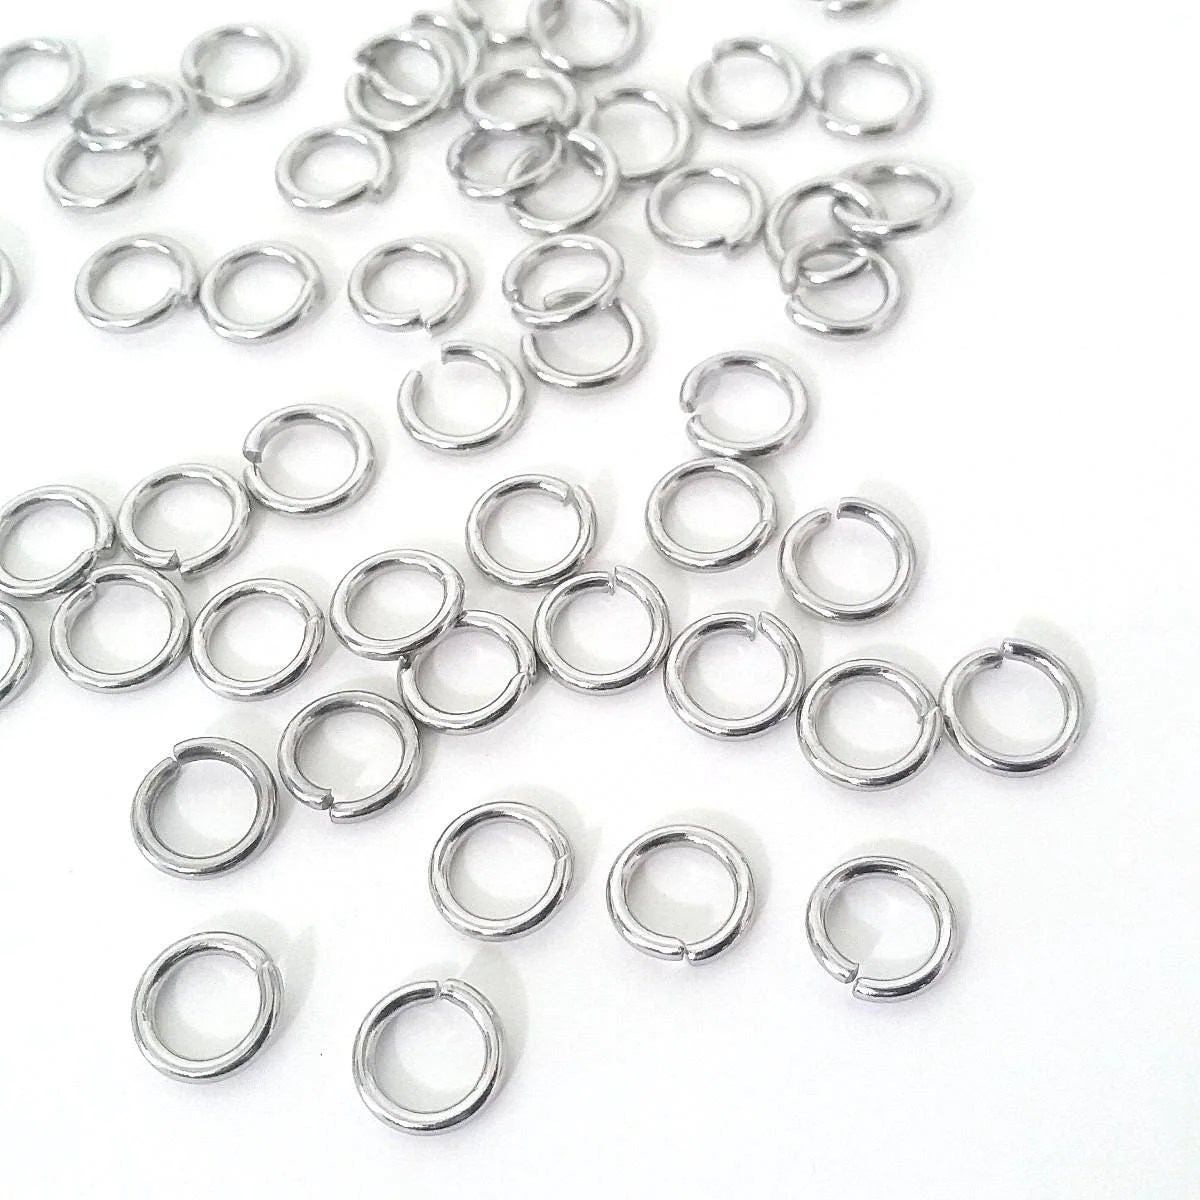 Extra Heavy Duty Jump Rings 8mm 9mm Or 10mm Diameter 15 Gauge 1 5mm Stainless Steel Jump